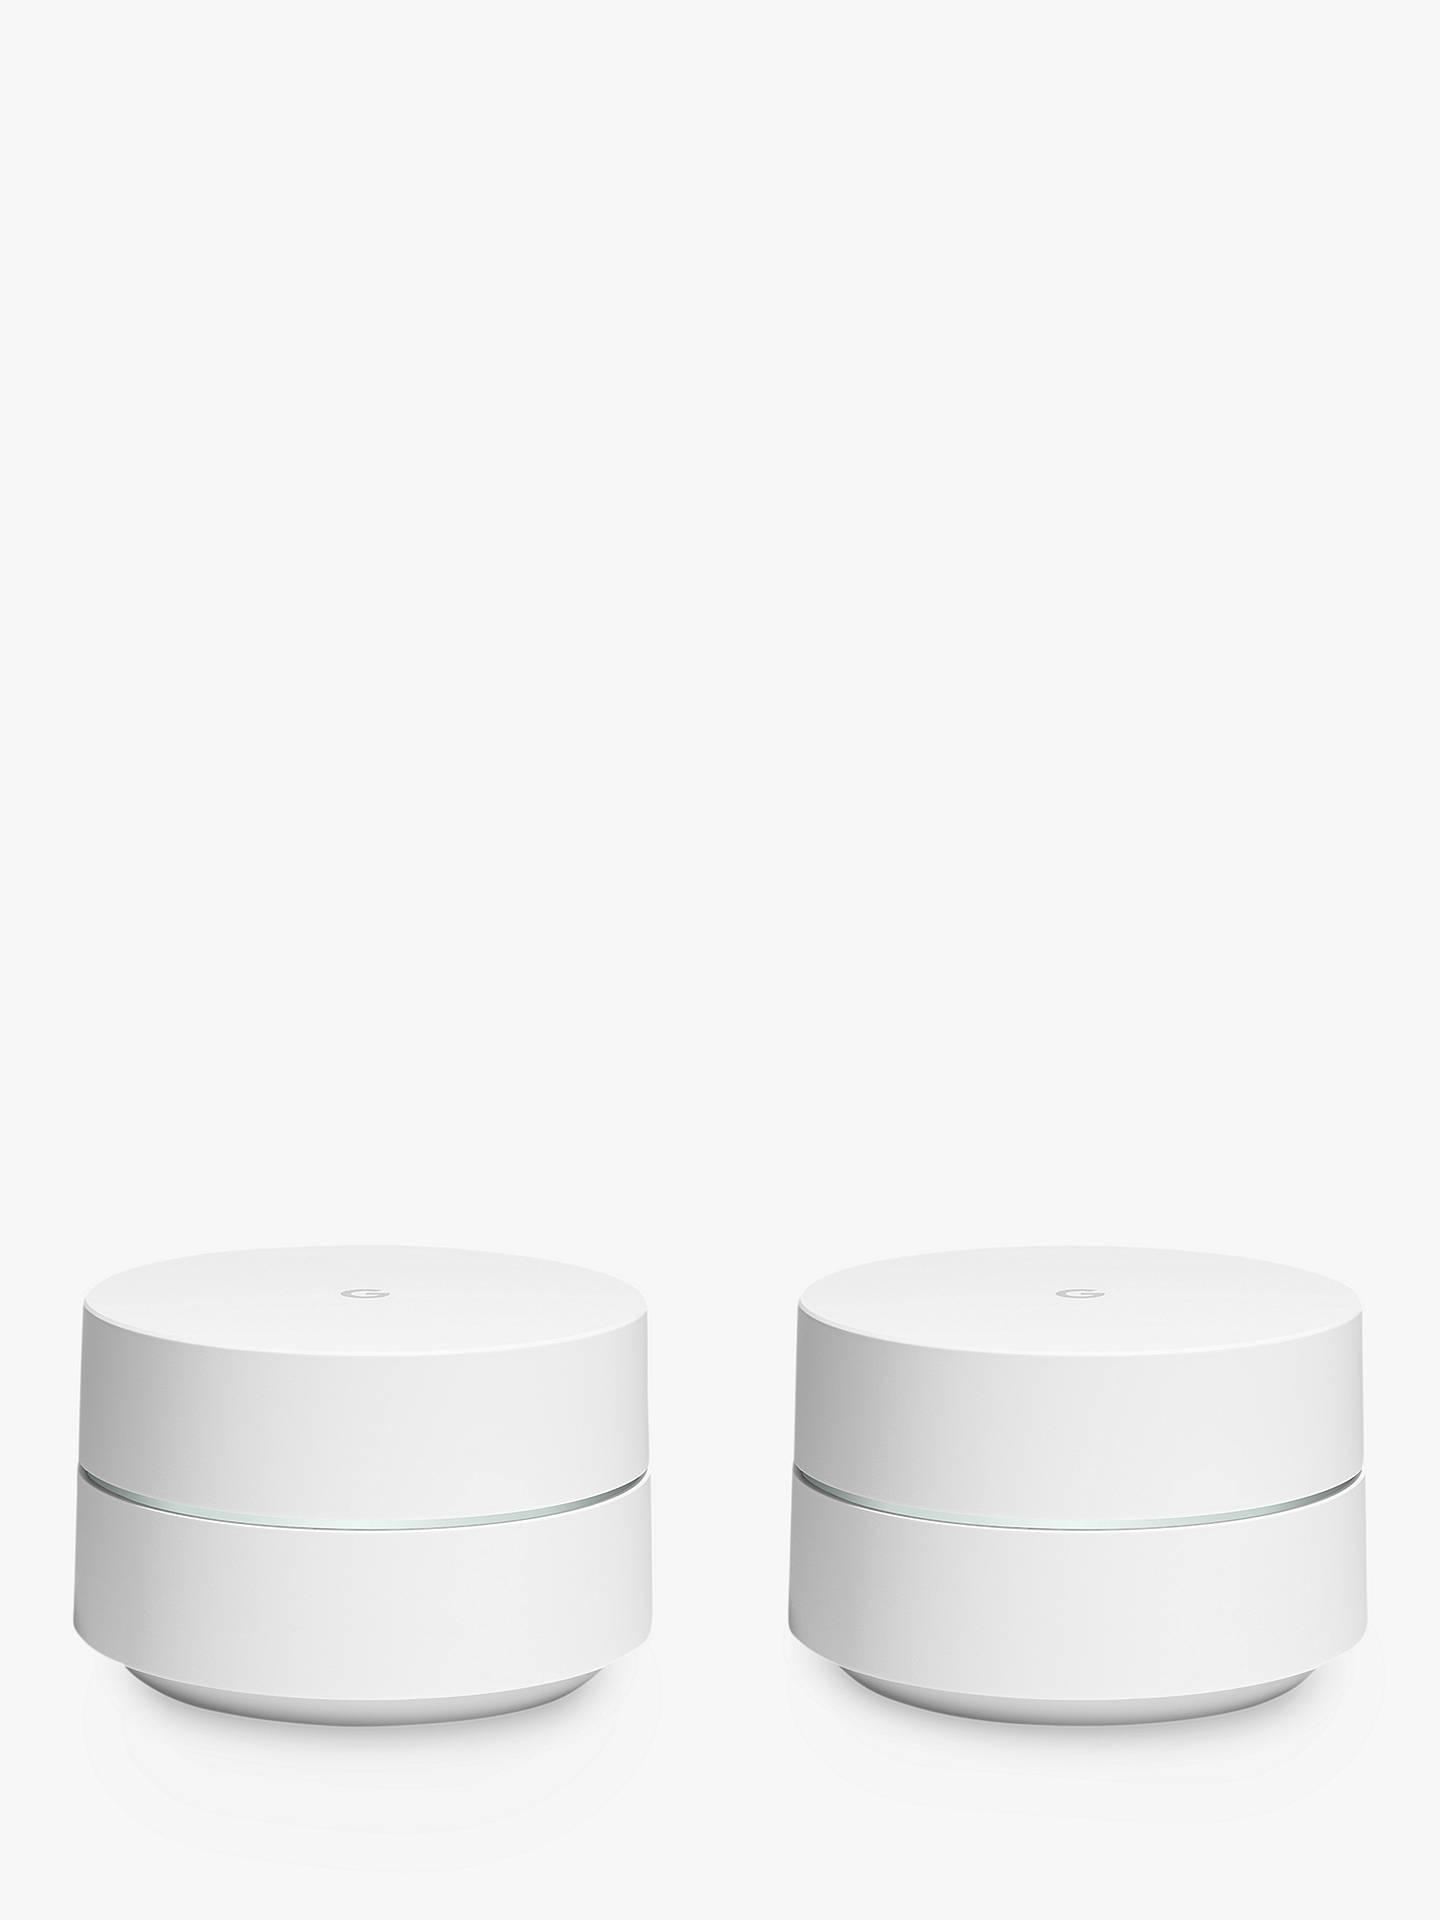 BuyGoogle Whole Home Wi-Fi System, 4GB eMMC Flash Storage, 512MB RAM, Two Pack Online at johnlewis.com